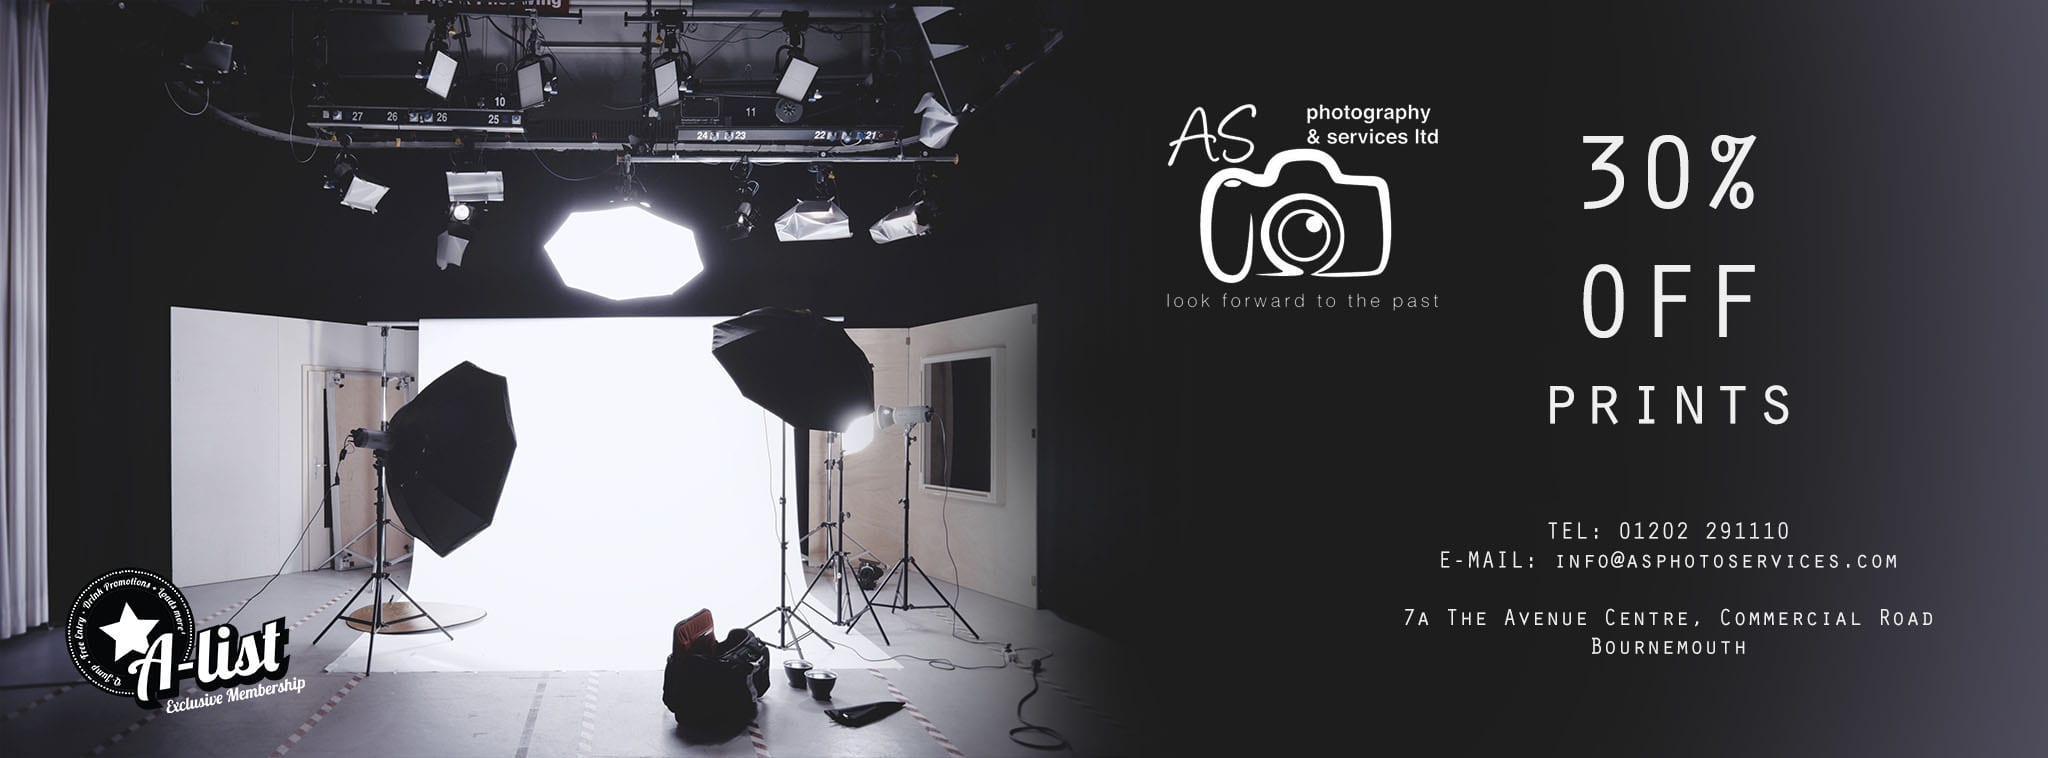 AS Photography & Services LTD